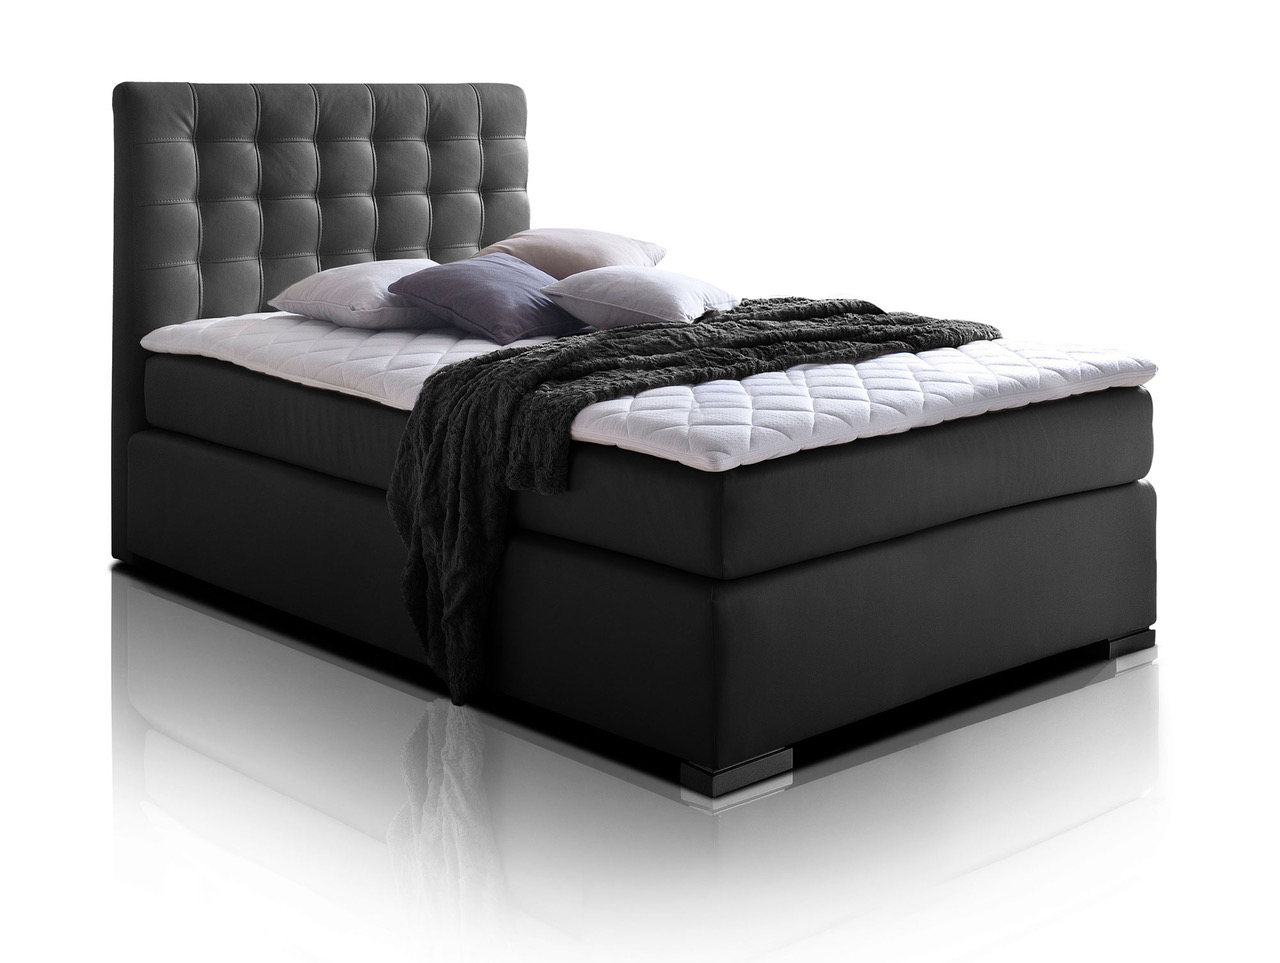 isabell boxspringbett 90 x 200 cm schwarz h rtegrad 2. Black Bedroom Furniture Sets. Home Design Ideas